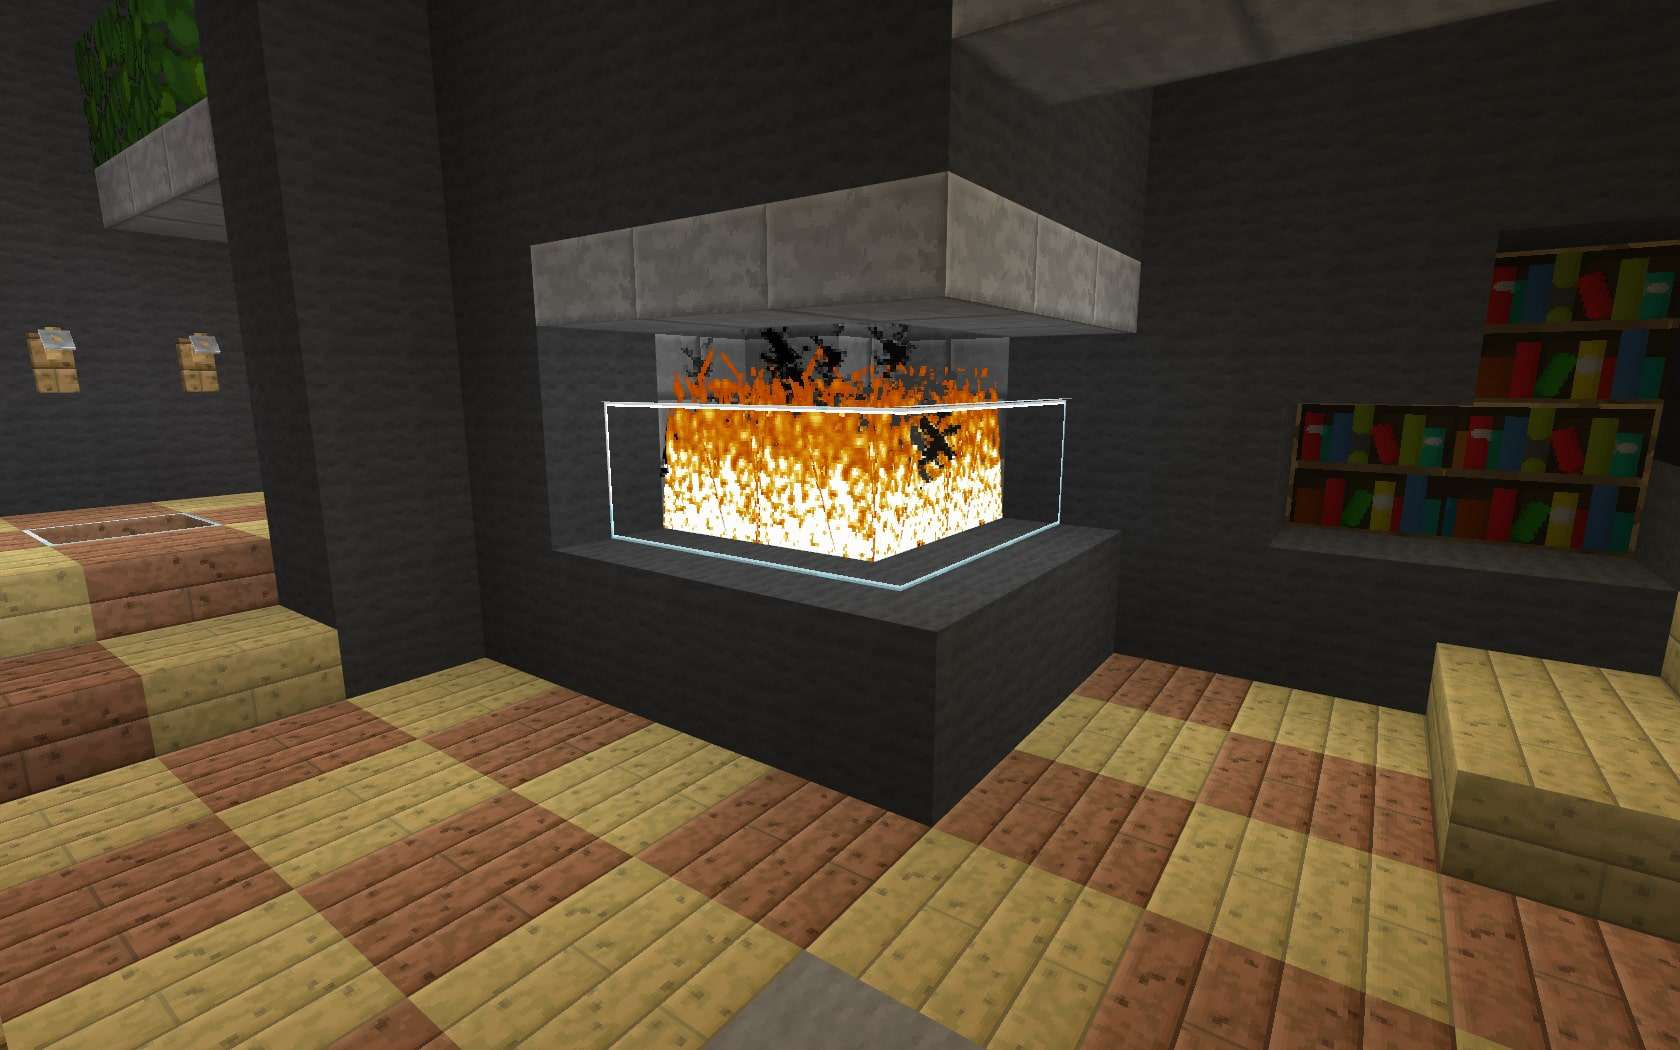 9 fireplace ideas minecraft building inc. Black Bedroom Furniture Sets. Home Design Ideas